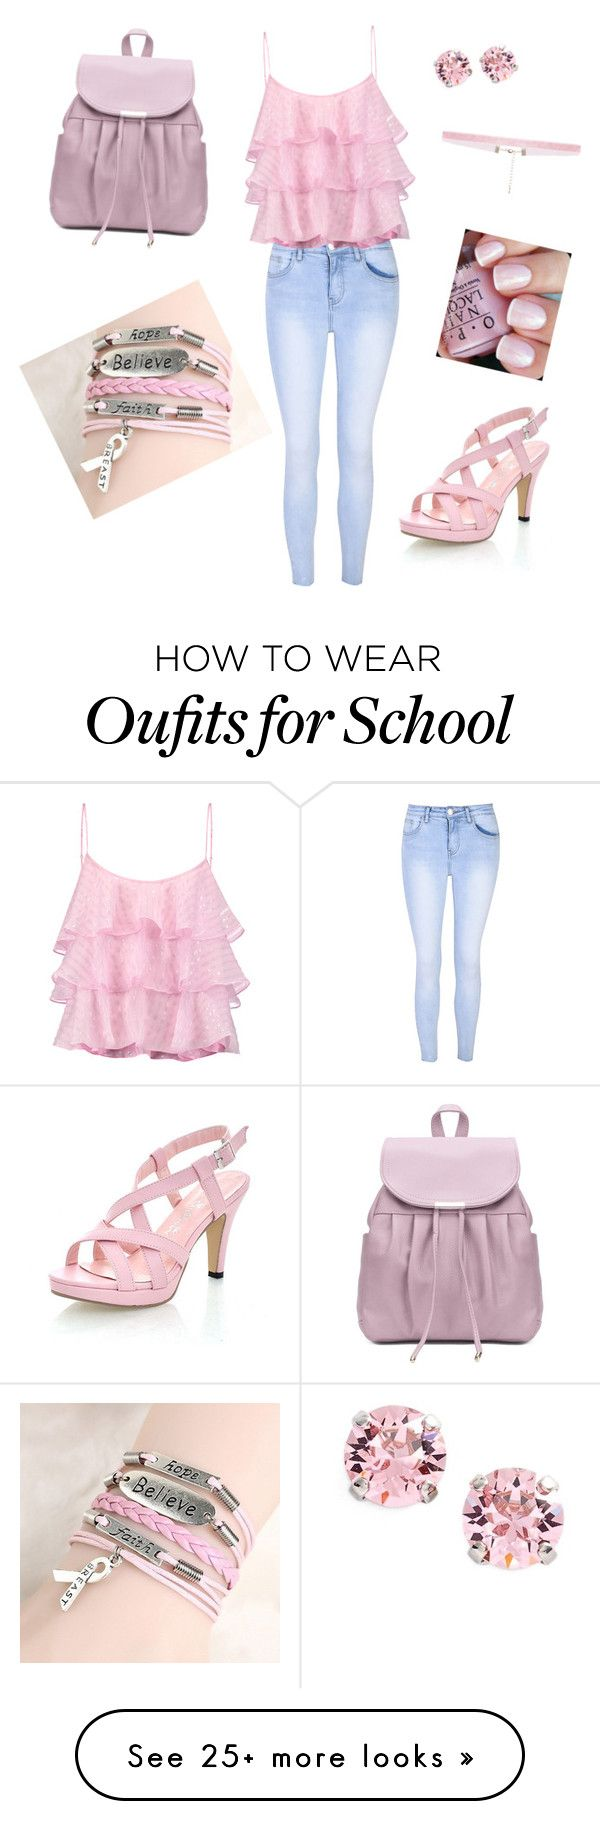 """""""Pink School"""" by krazy-kitten on Polyvore featuring Glamorous, Pierre Balmain, L. Erickson, OPI and 8 Other Reasons"""